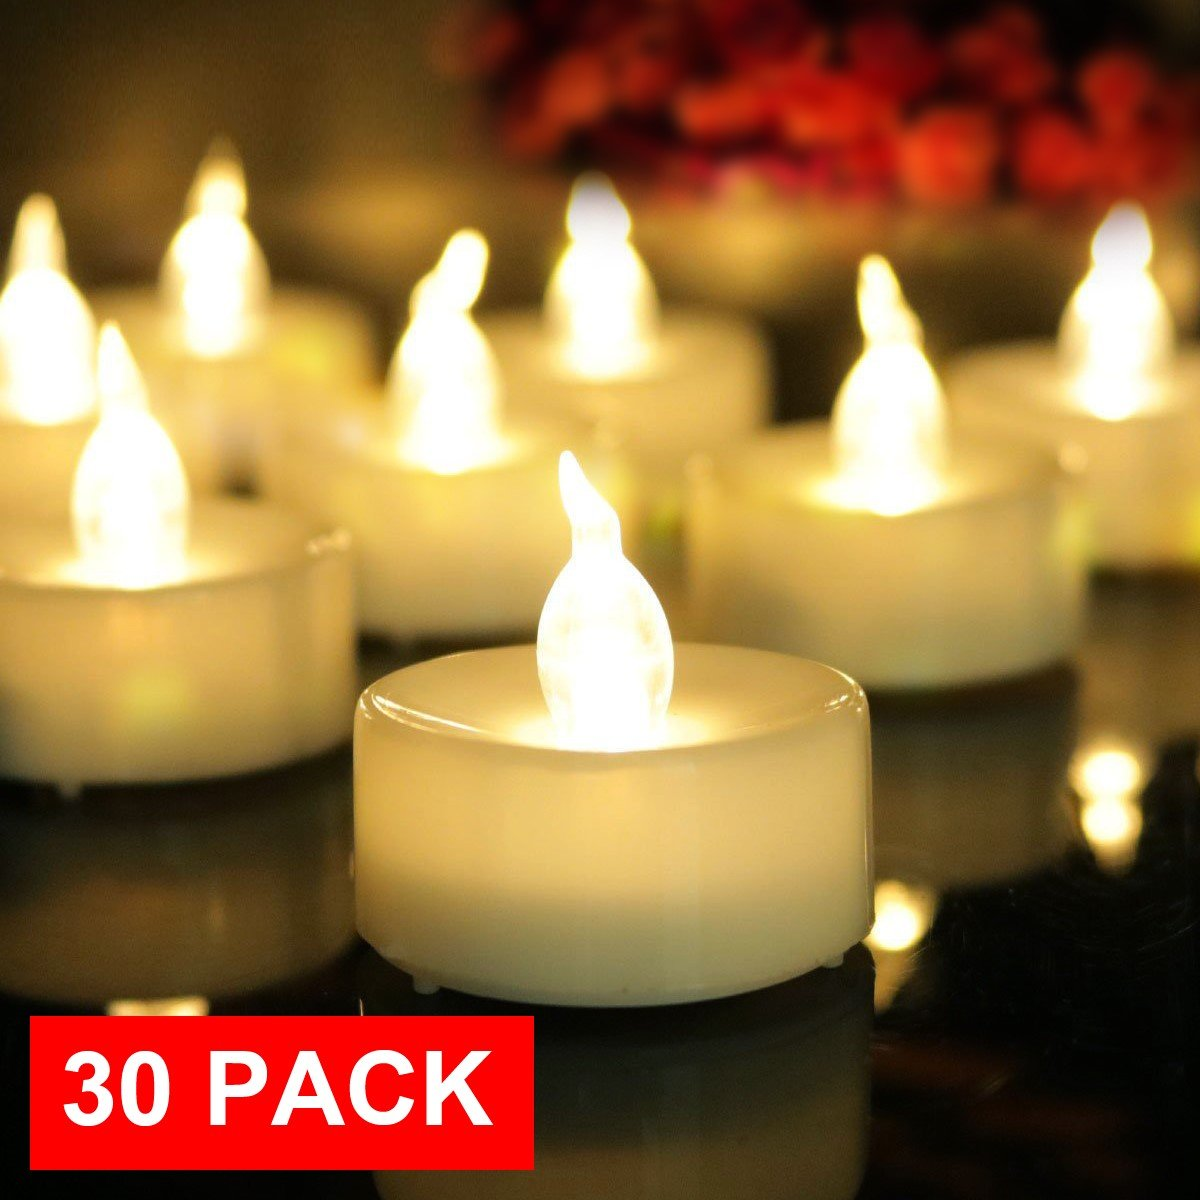 AMAGIC Pack of 30 Electric Battery Operated Tea Lights Bulk -Realistic Flameless Tealight Candles Natural Warm White Light, Quality Fake Led Tealight Candles Holiday, Wedding, Party-No Remote by AMAGIC